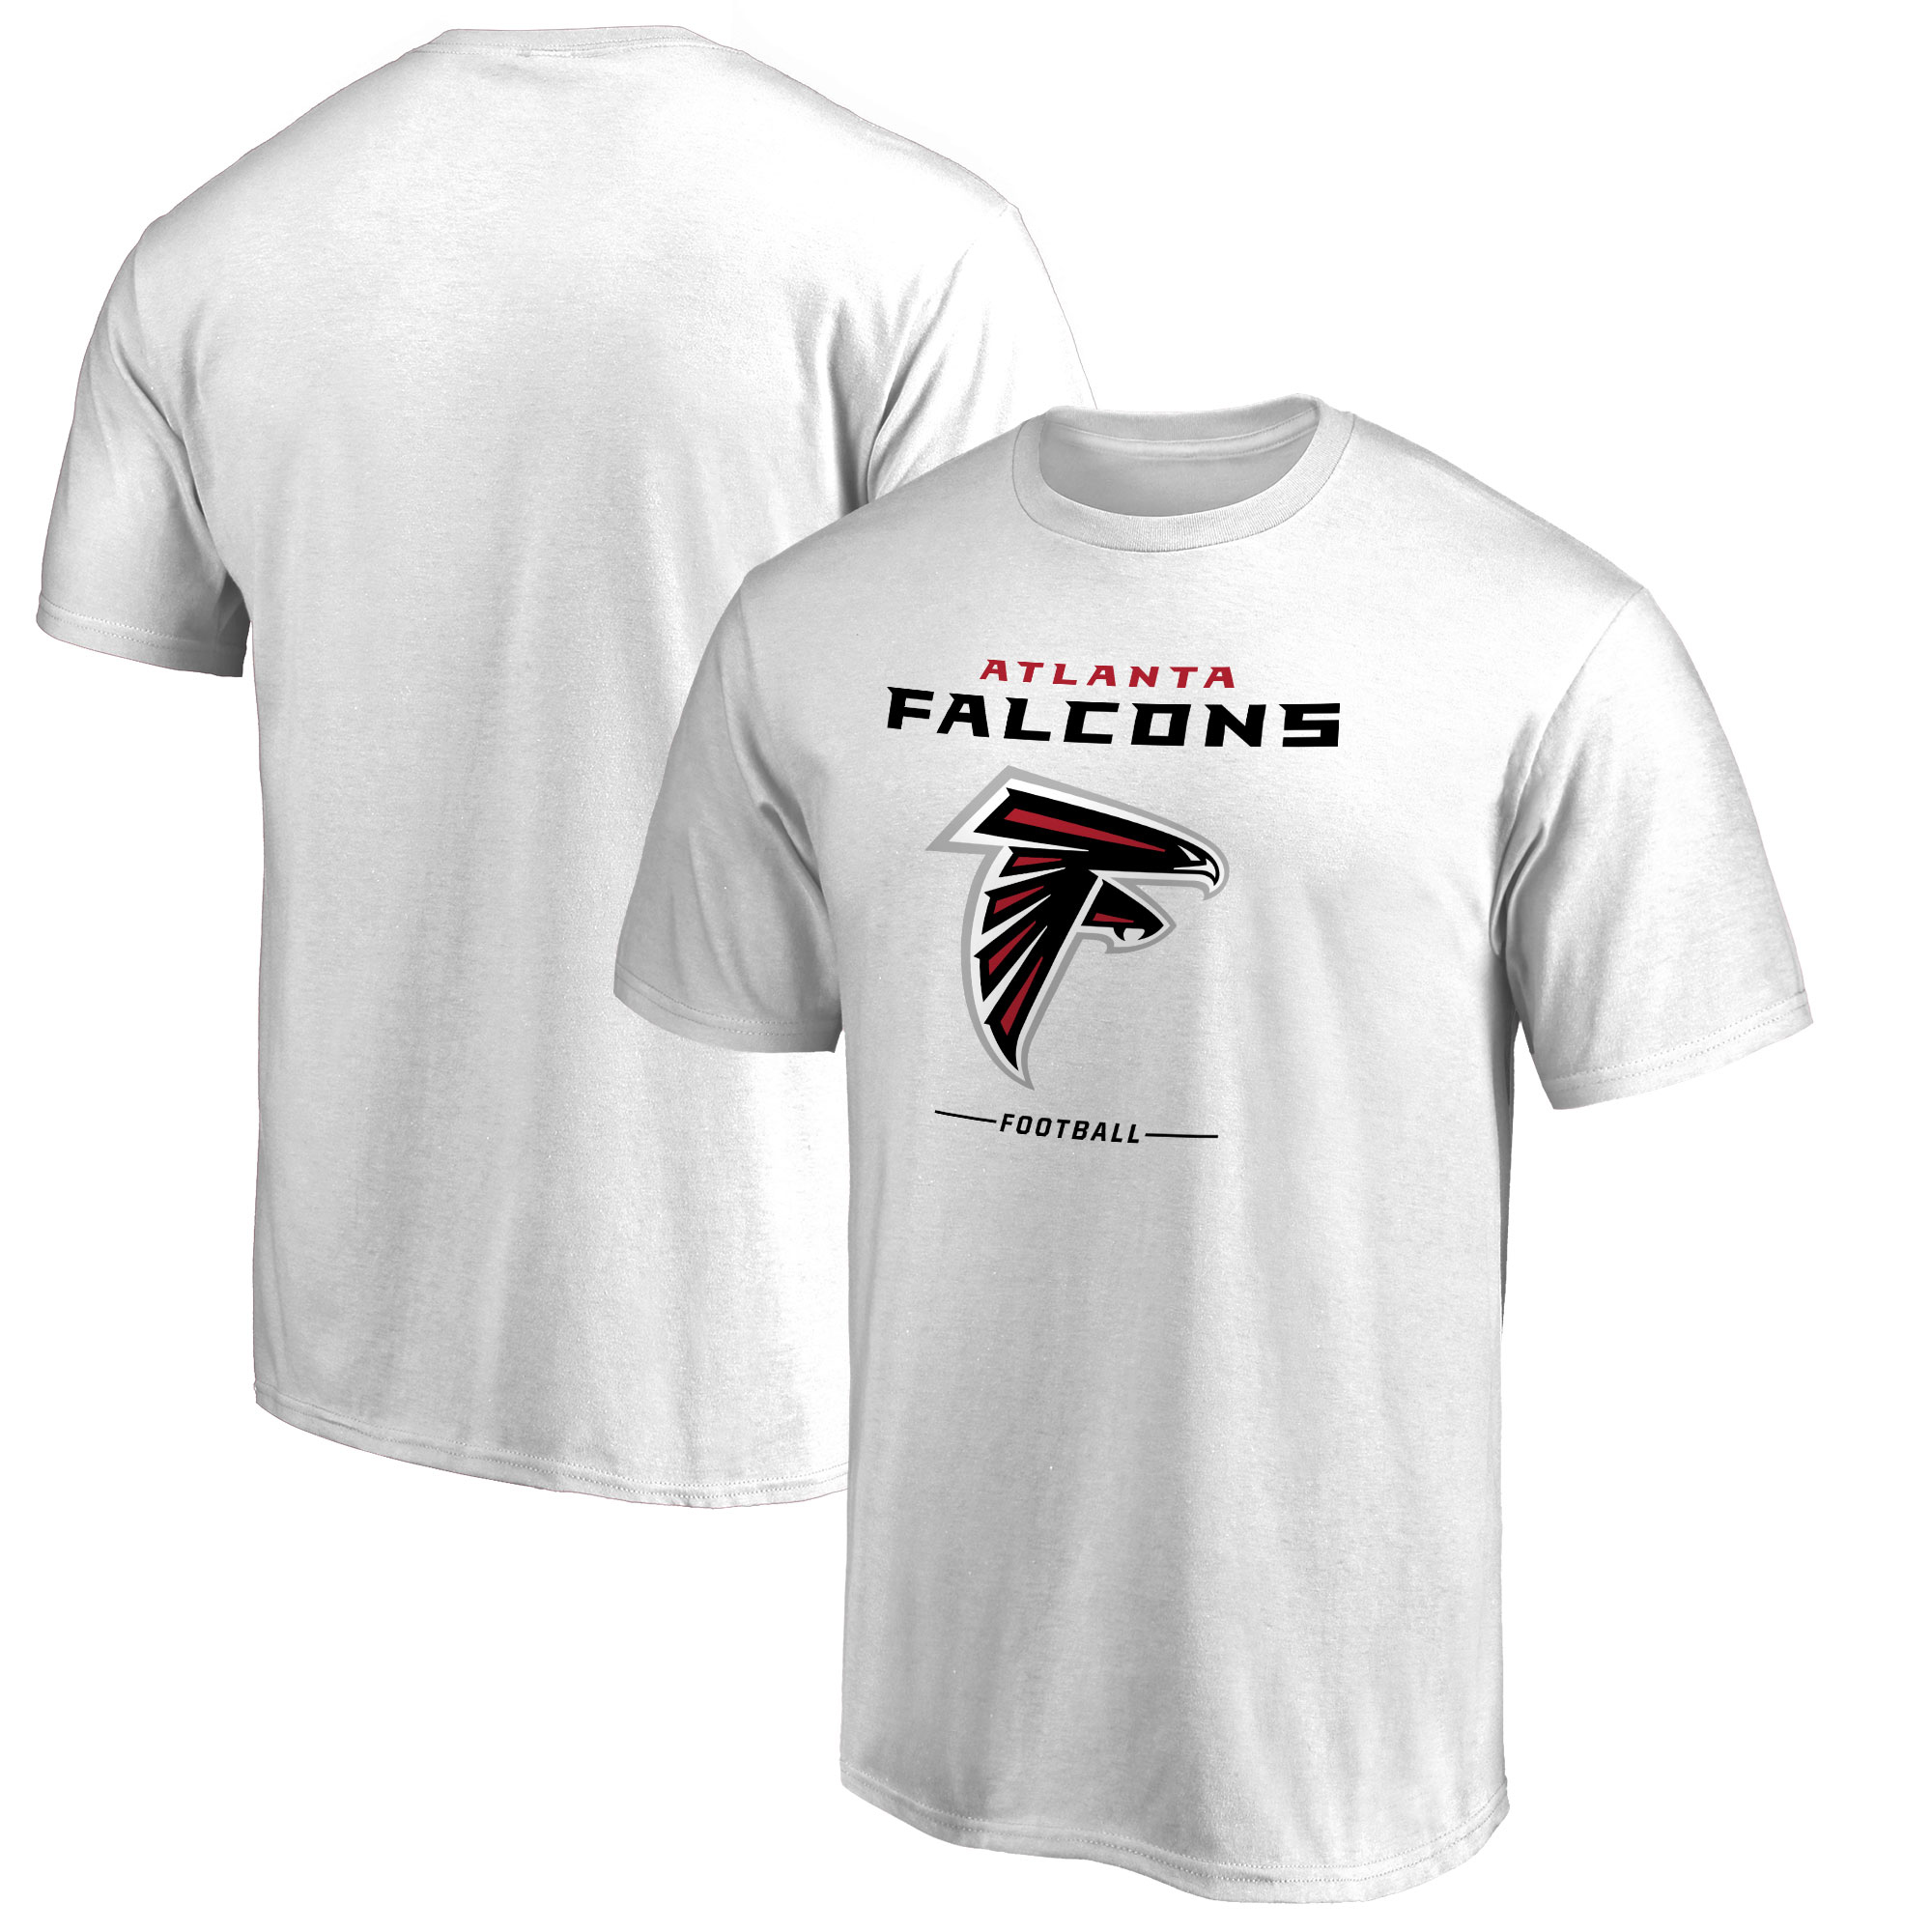 Atlanta Falcons NFL Pro Line by Fanatics Branded Team Lockup T-Shirt - White